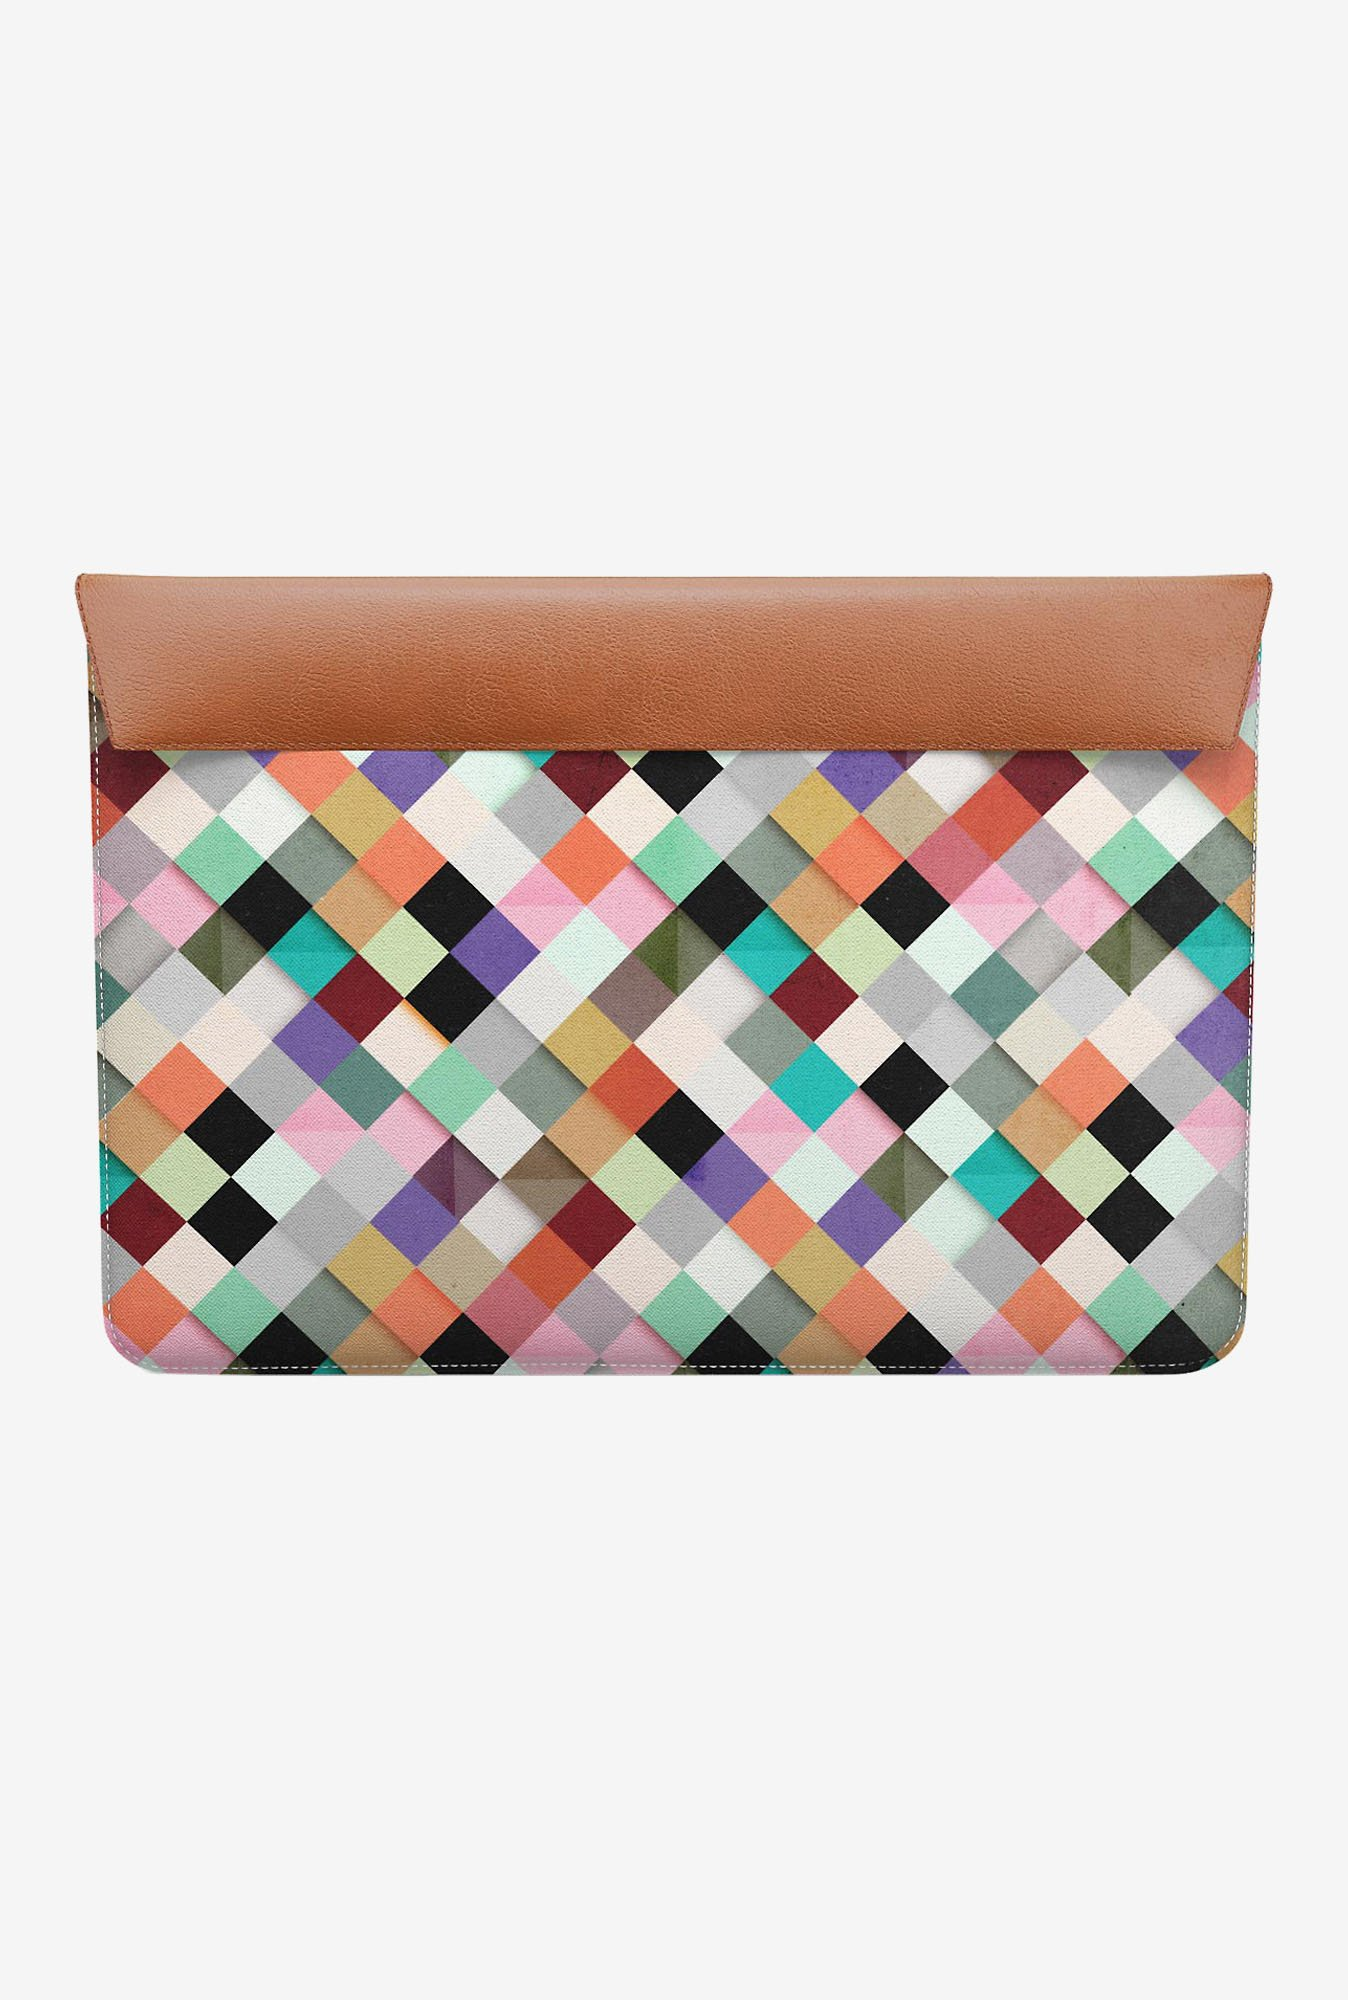 DailyObjects Pastels MacBook 12 Envelope Sleeve